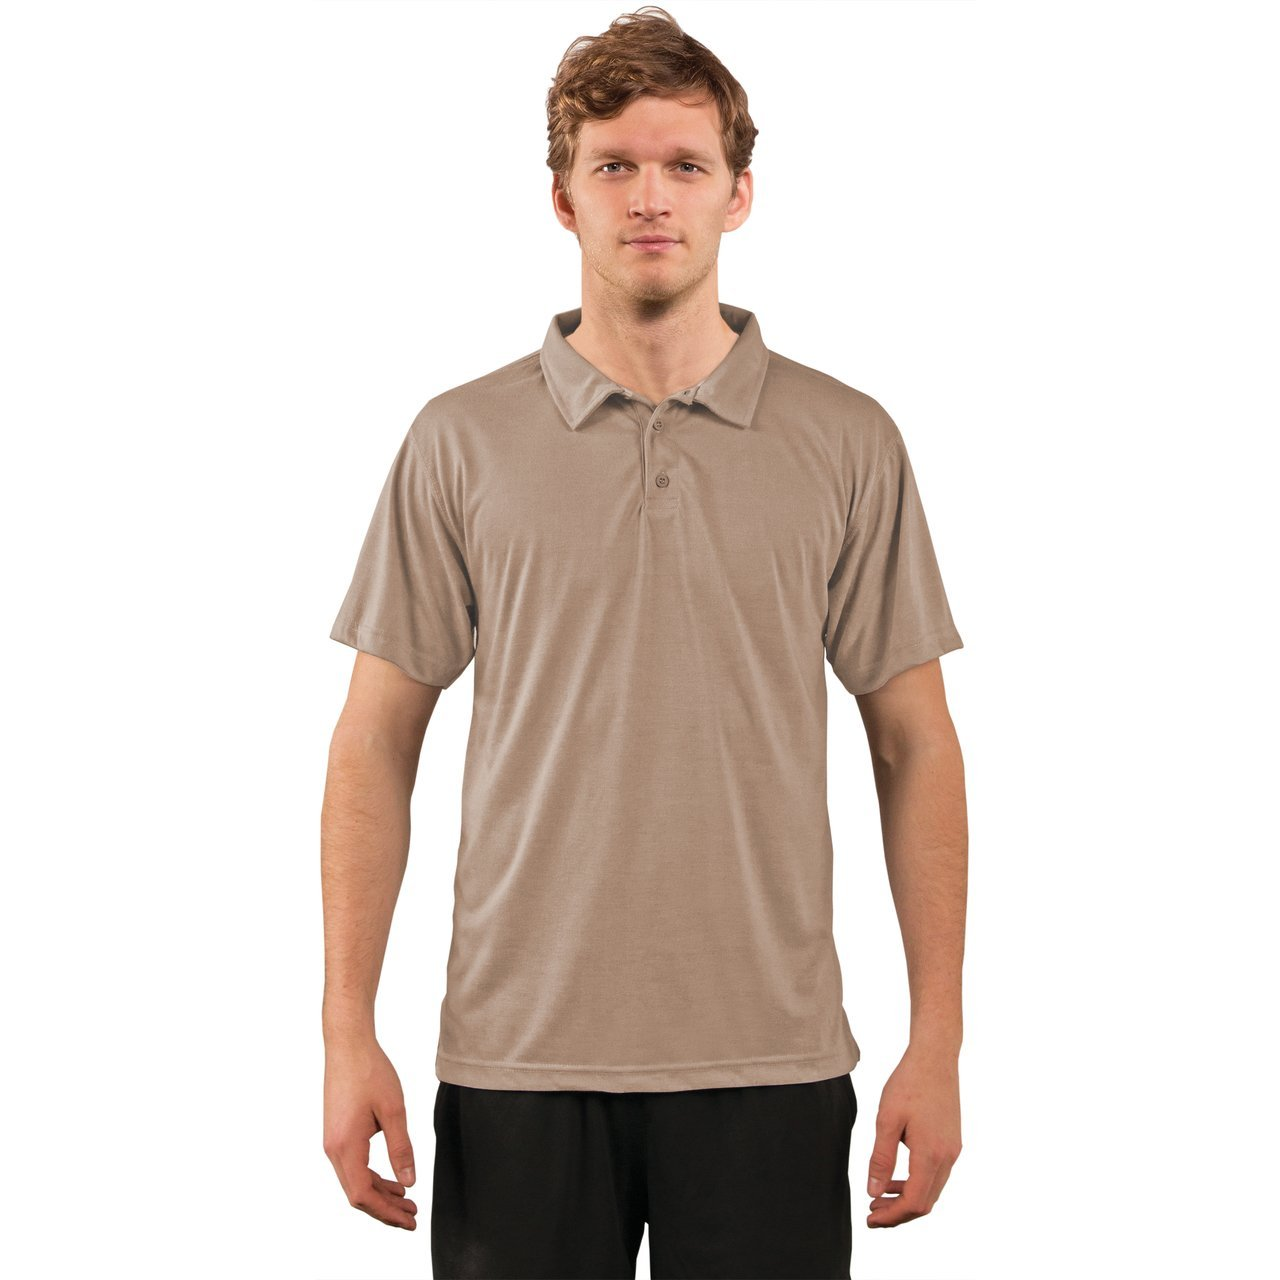 A1SJBPSD Basic Performance Polo - Sand